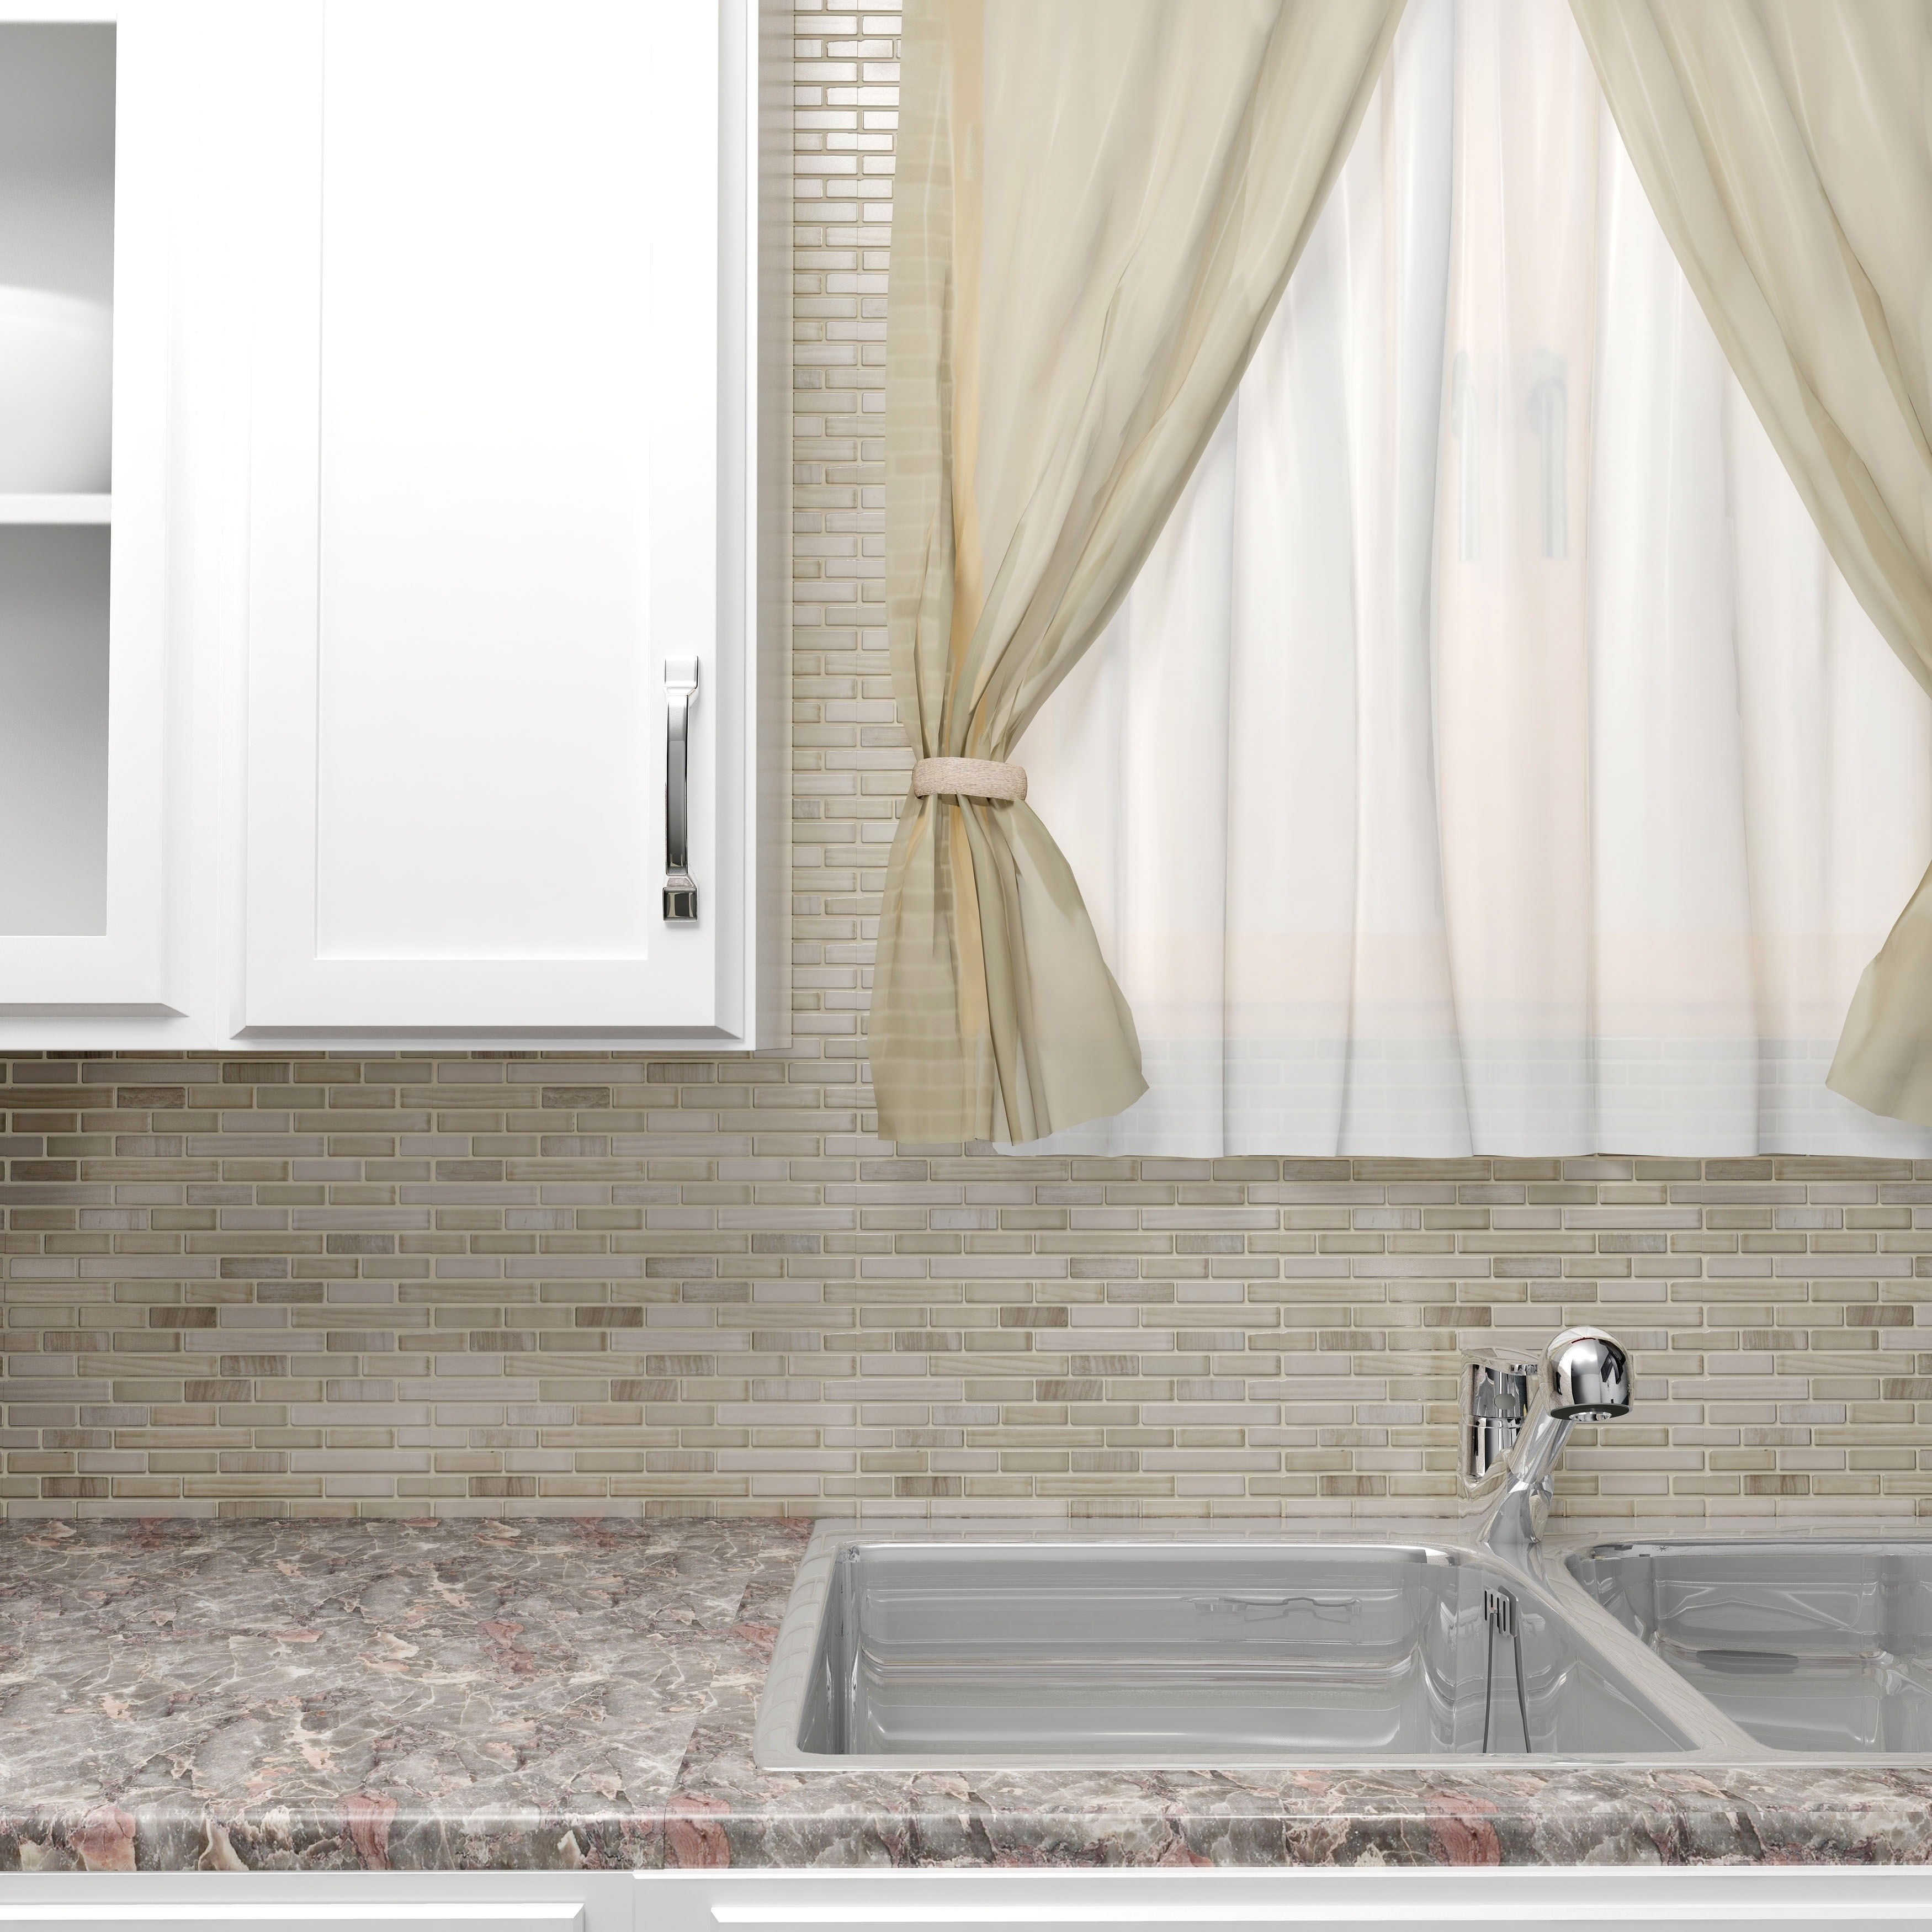 Glass tile for the kitchen on the apron, mosaic for the bathroom